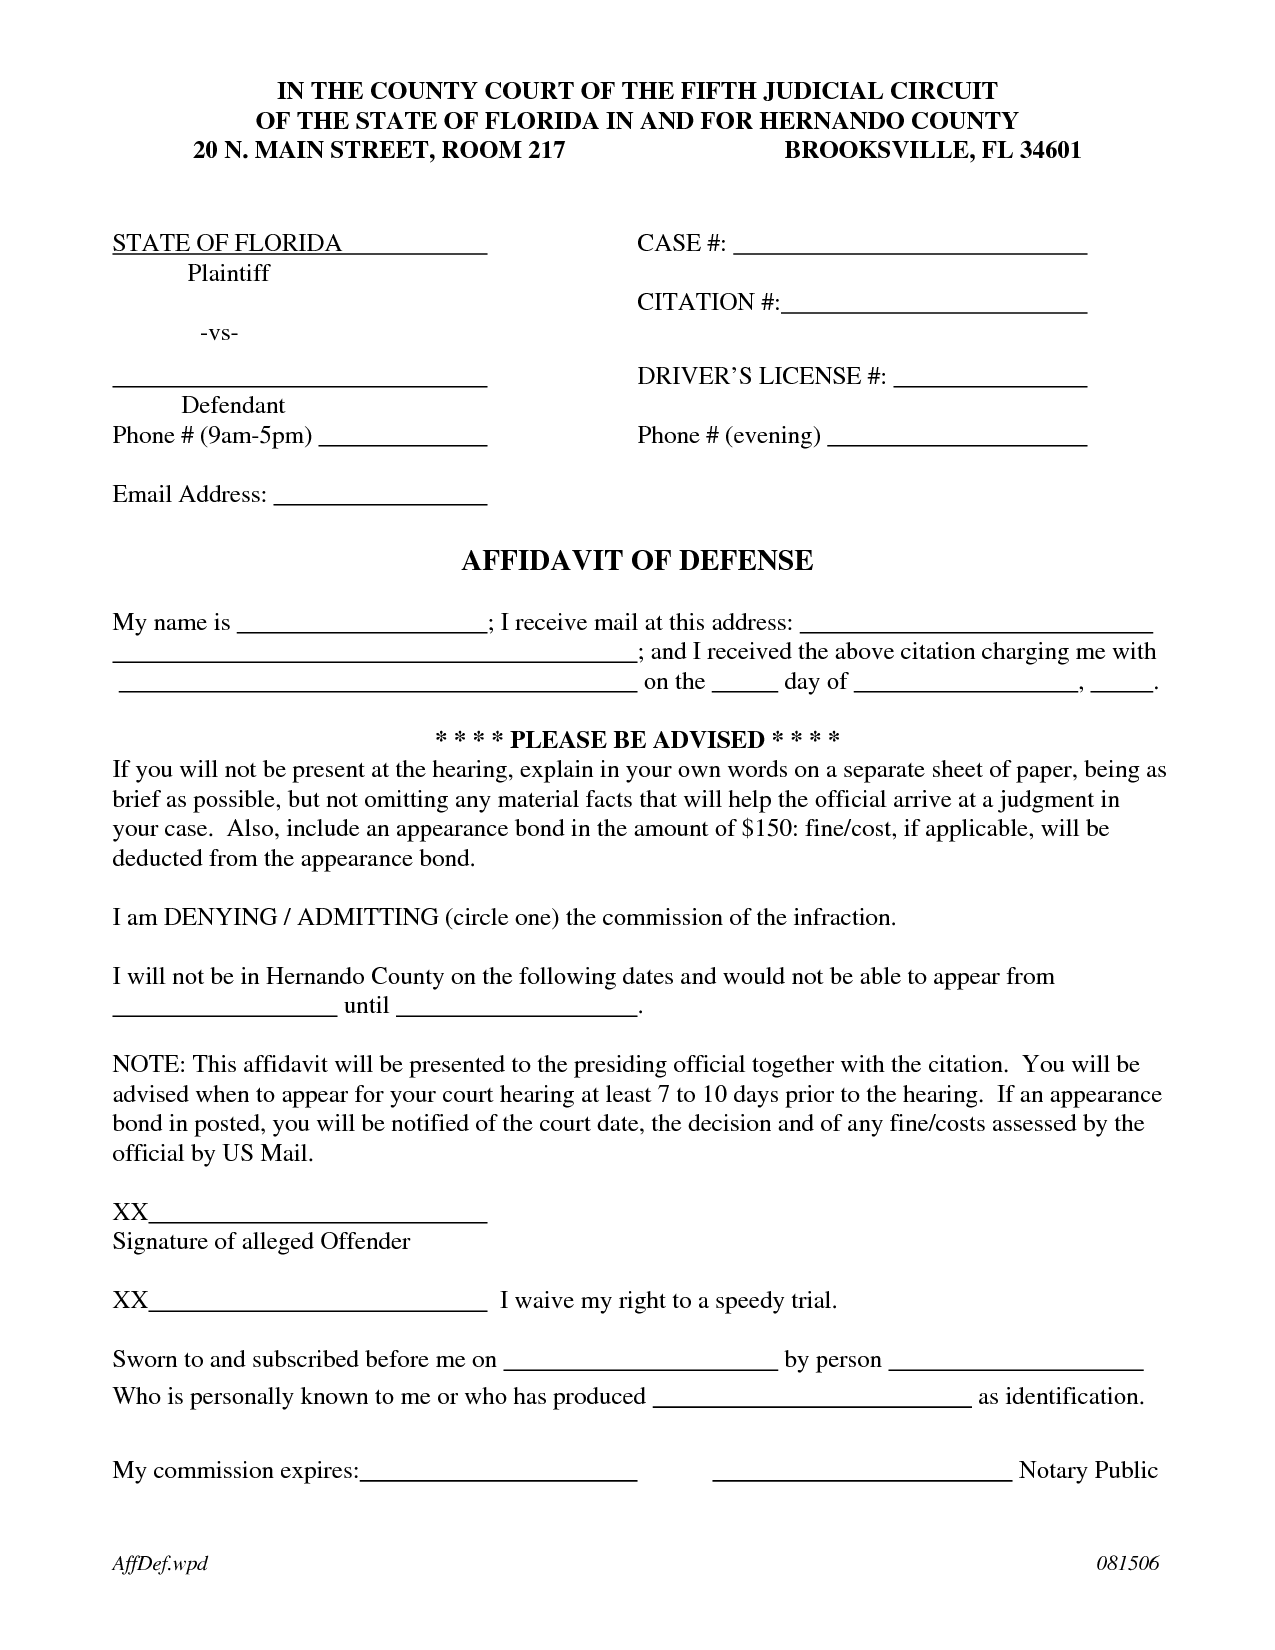 Affidavit Of Defense Template By RichardCataman  Affidavit